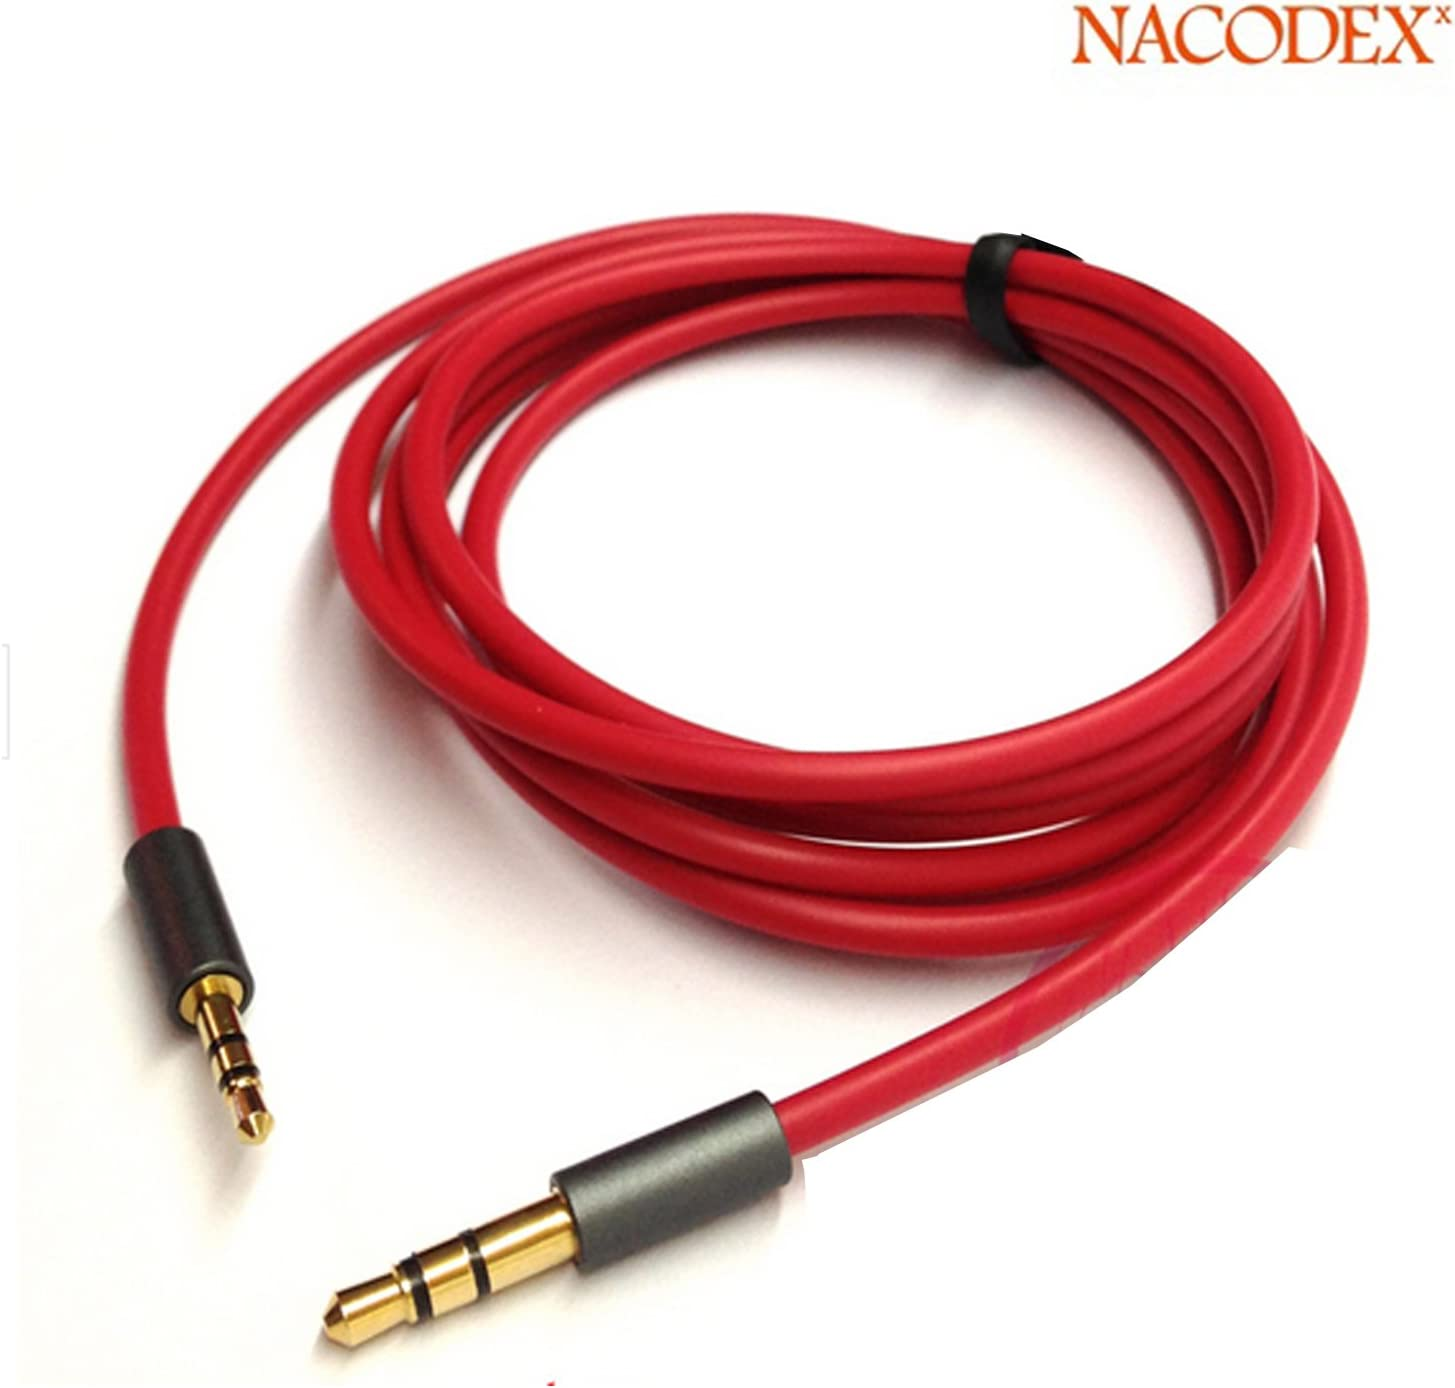 Nacodex [ Male to Male ] 2.5mm Male to 3.5mm Male Audio Adapter Cable Work with Car AUX Male to Male for the Record Line Gps Navigation [100cm]